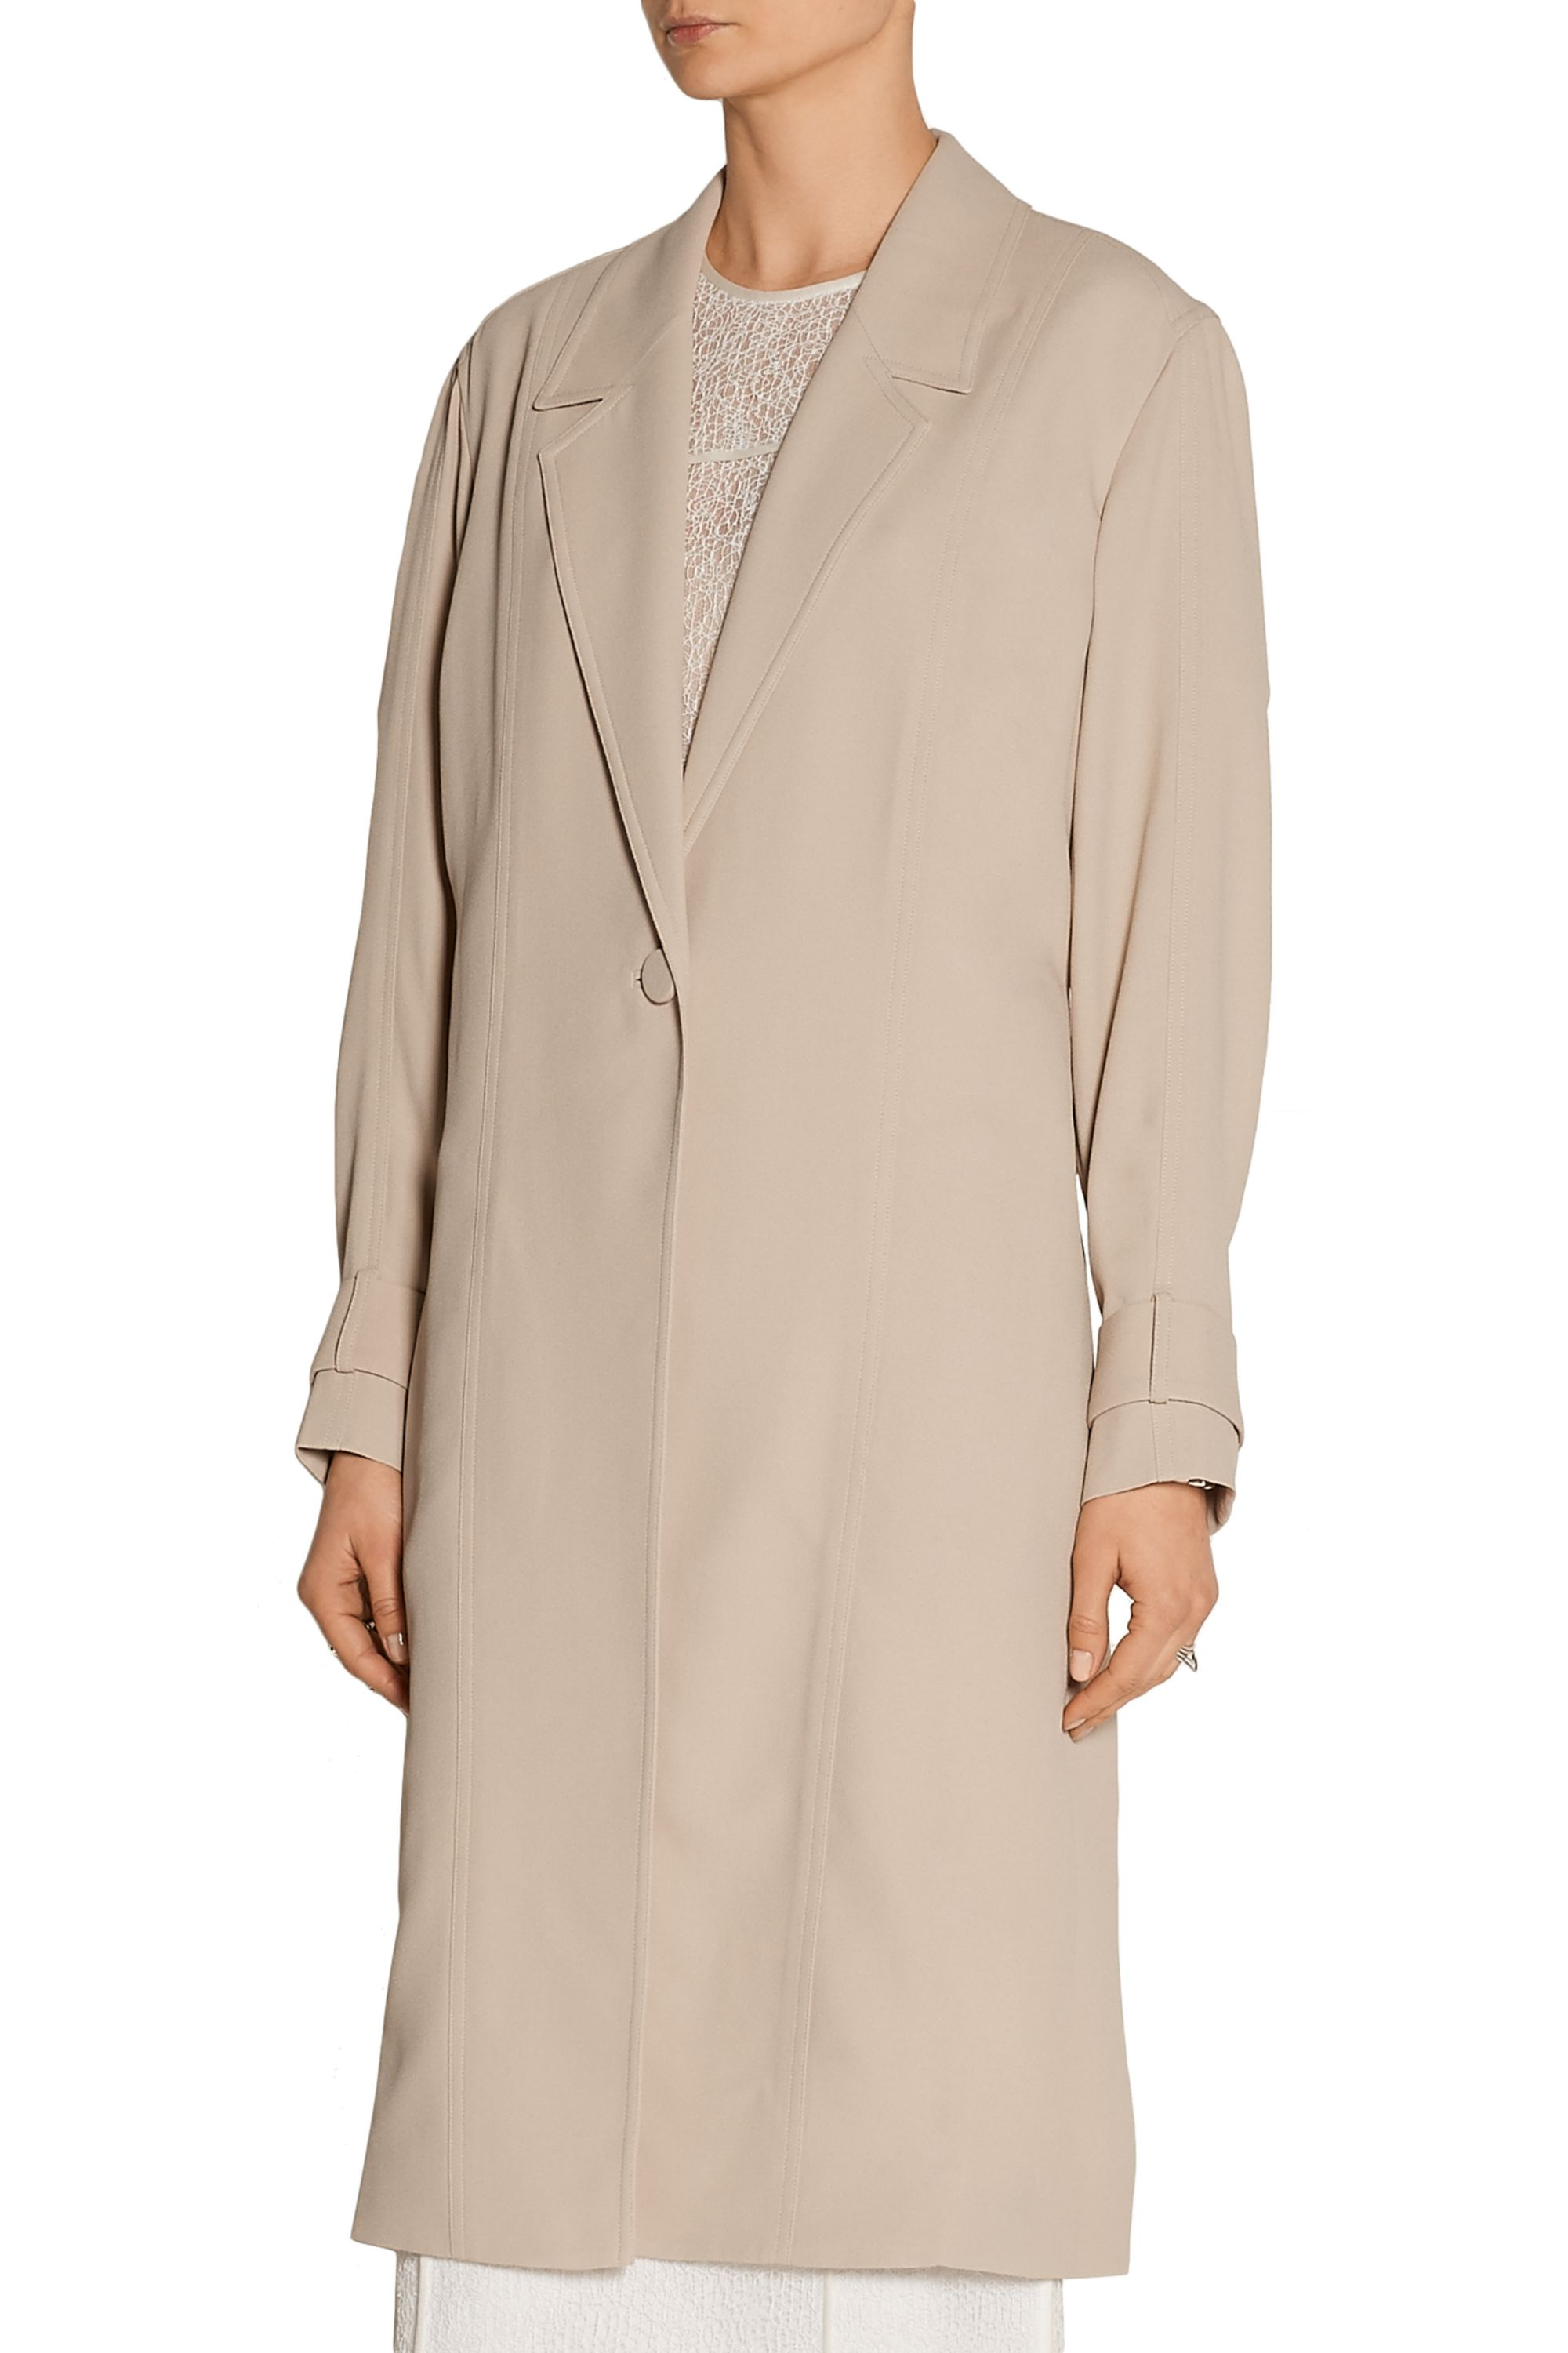 Jason Wu Collection Crepe trench coat